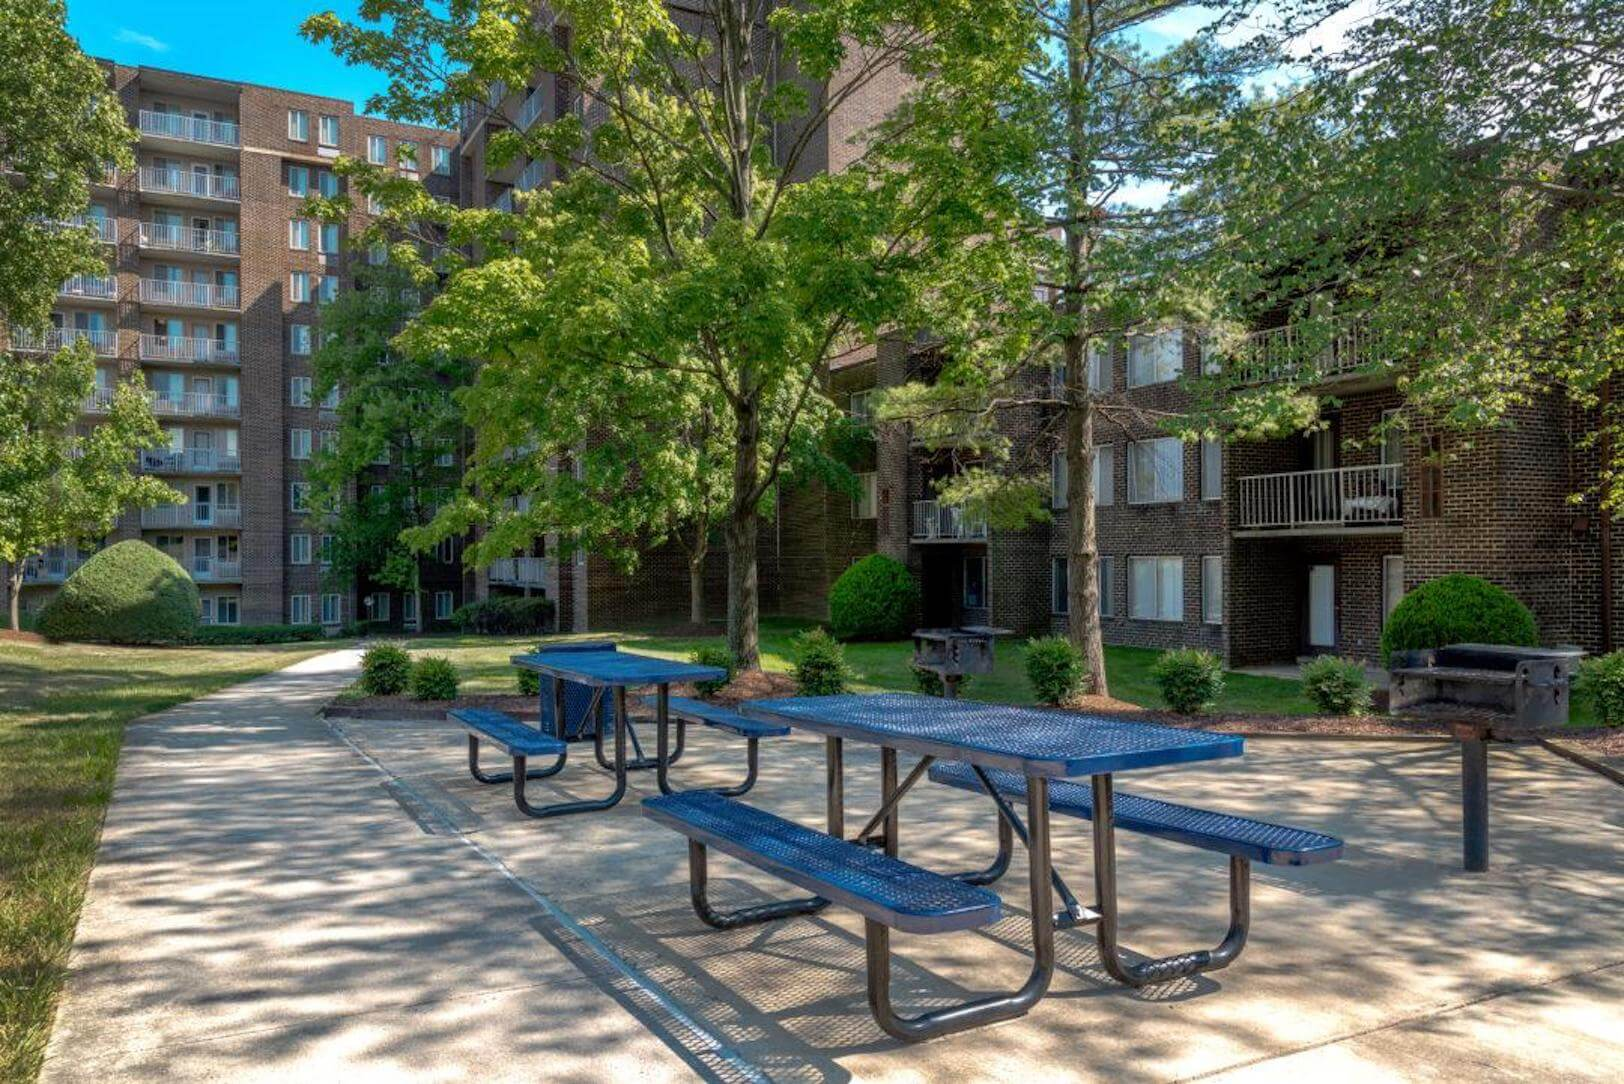 Picnic & Grilling Area (Middletowne)